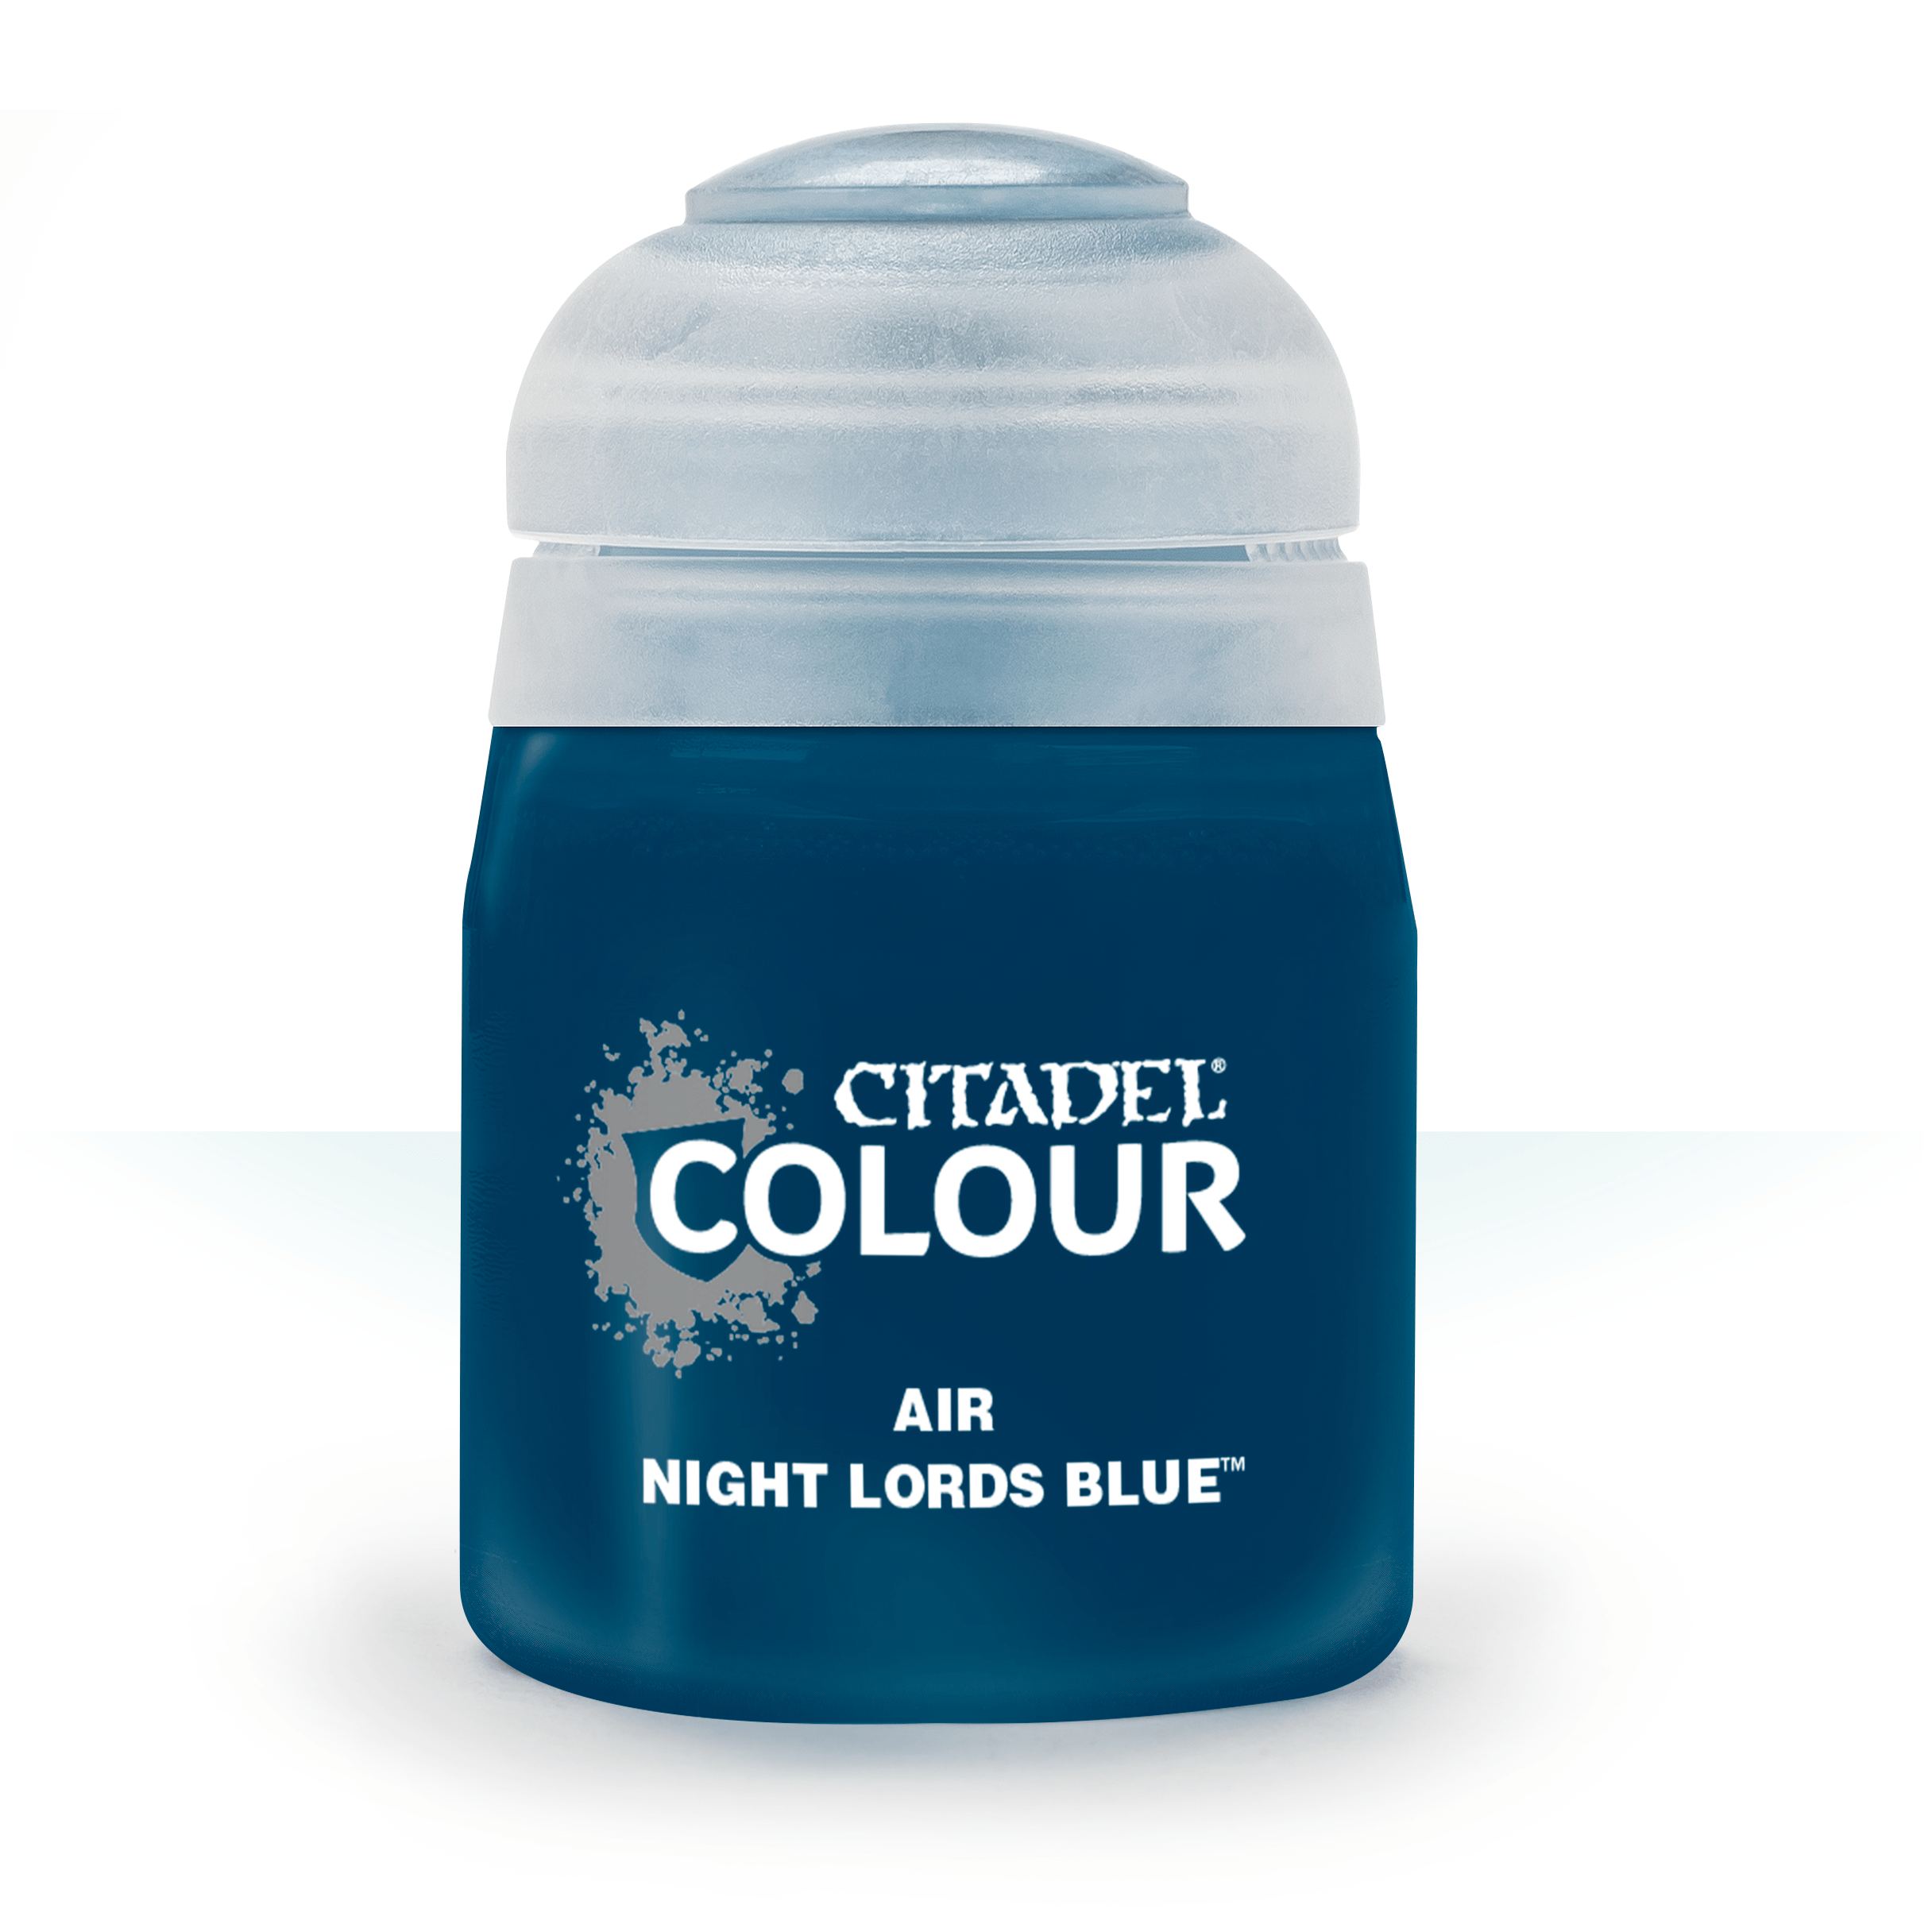 Citadel Airbrush Paints: Night Lords Blue